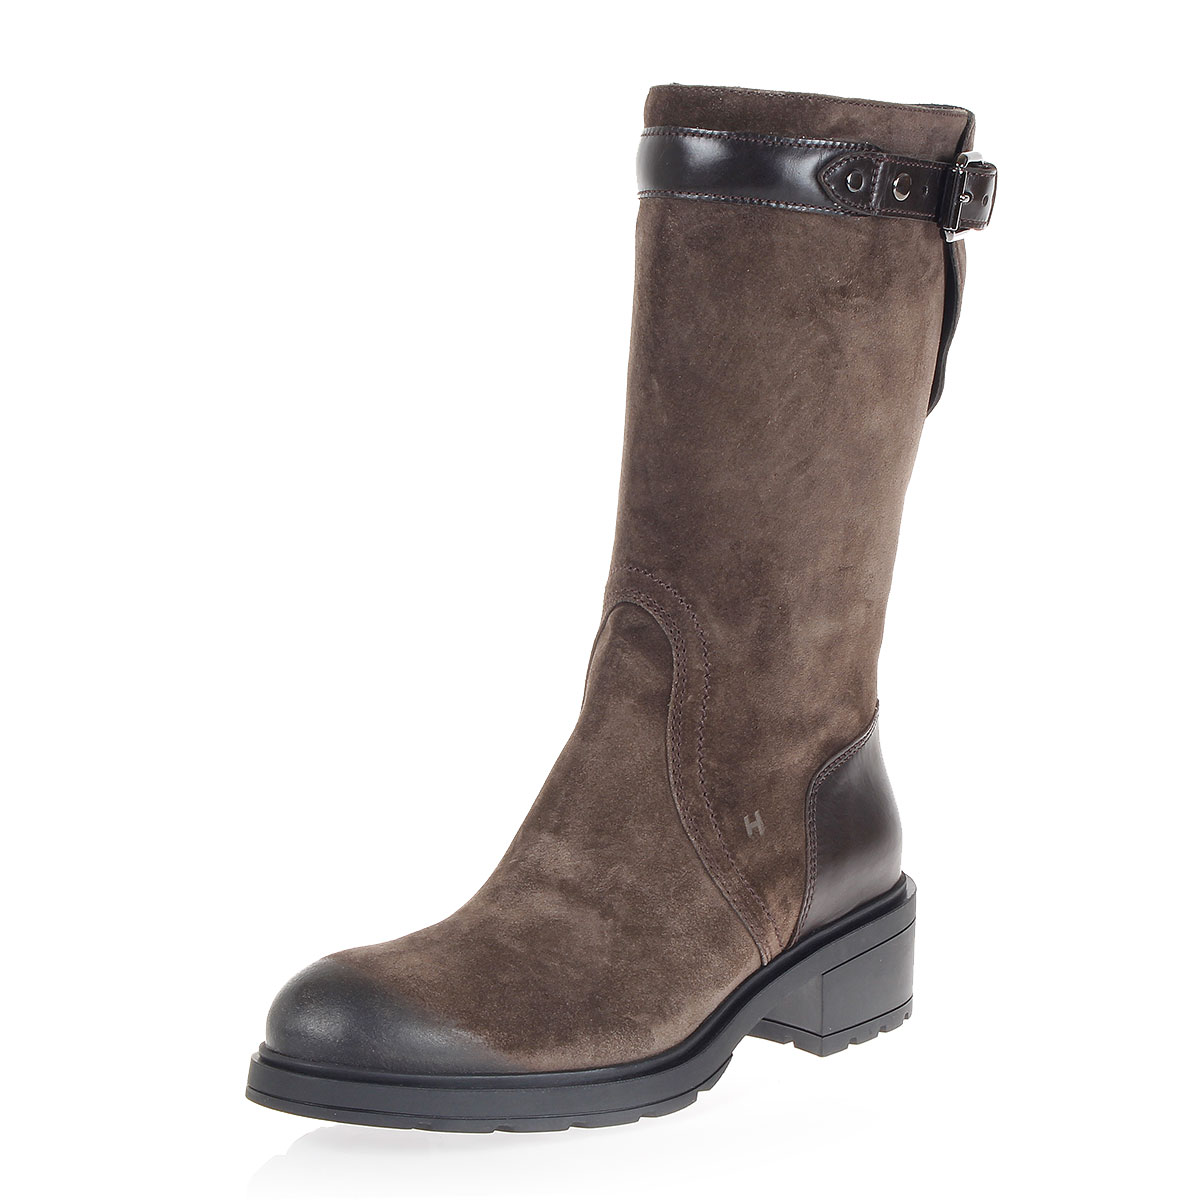 suede boots with buckle spence outlet